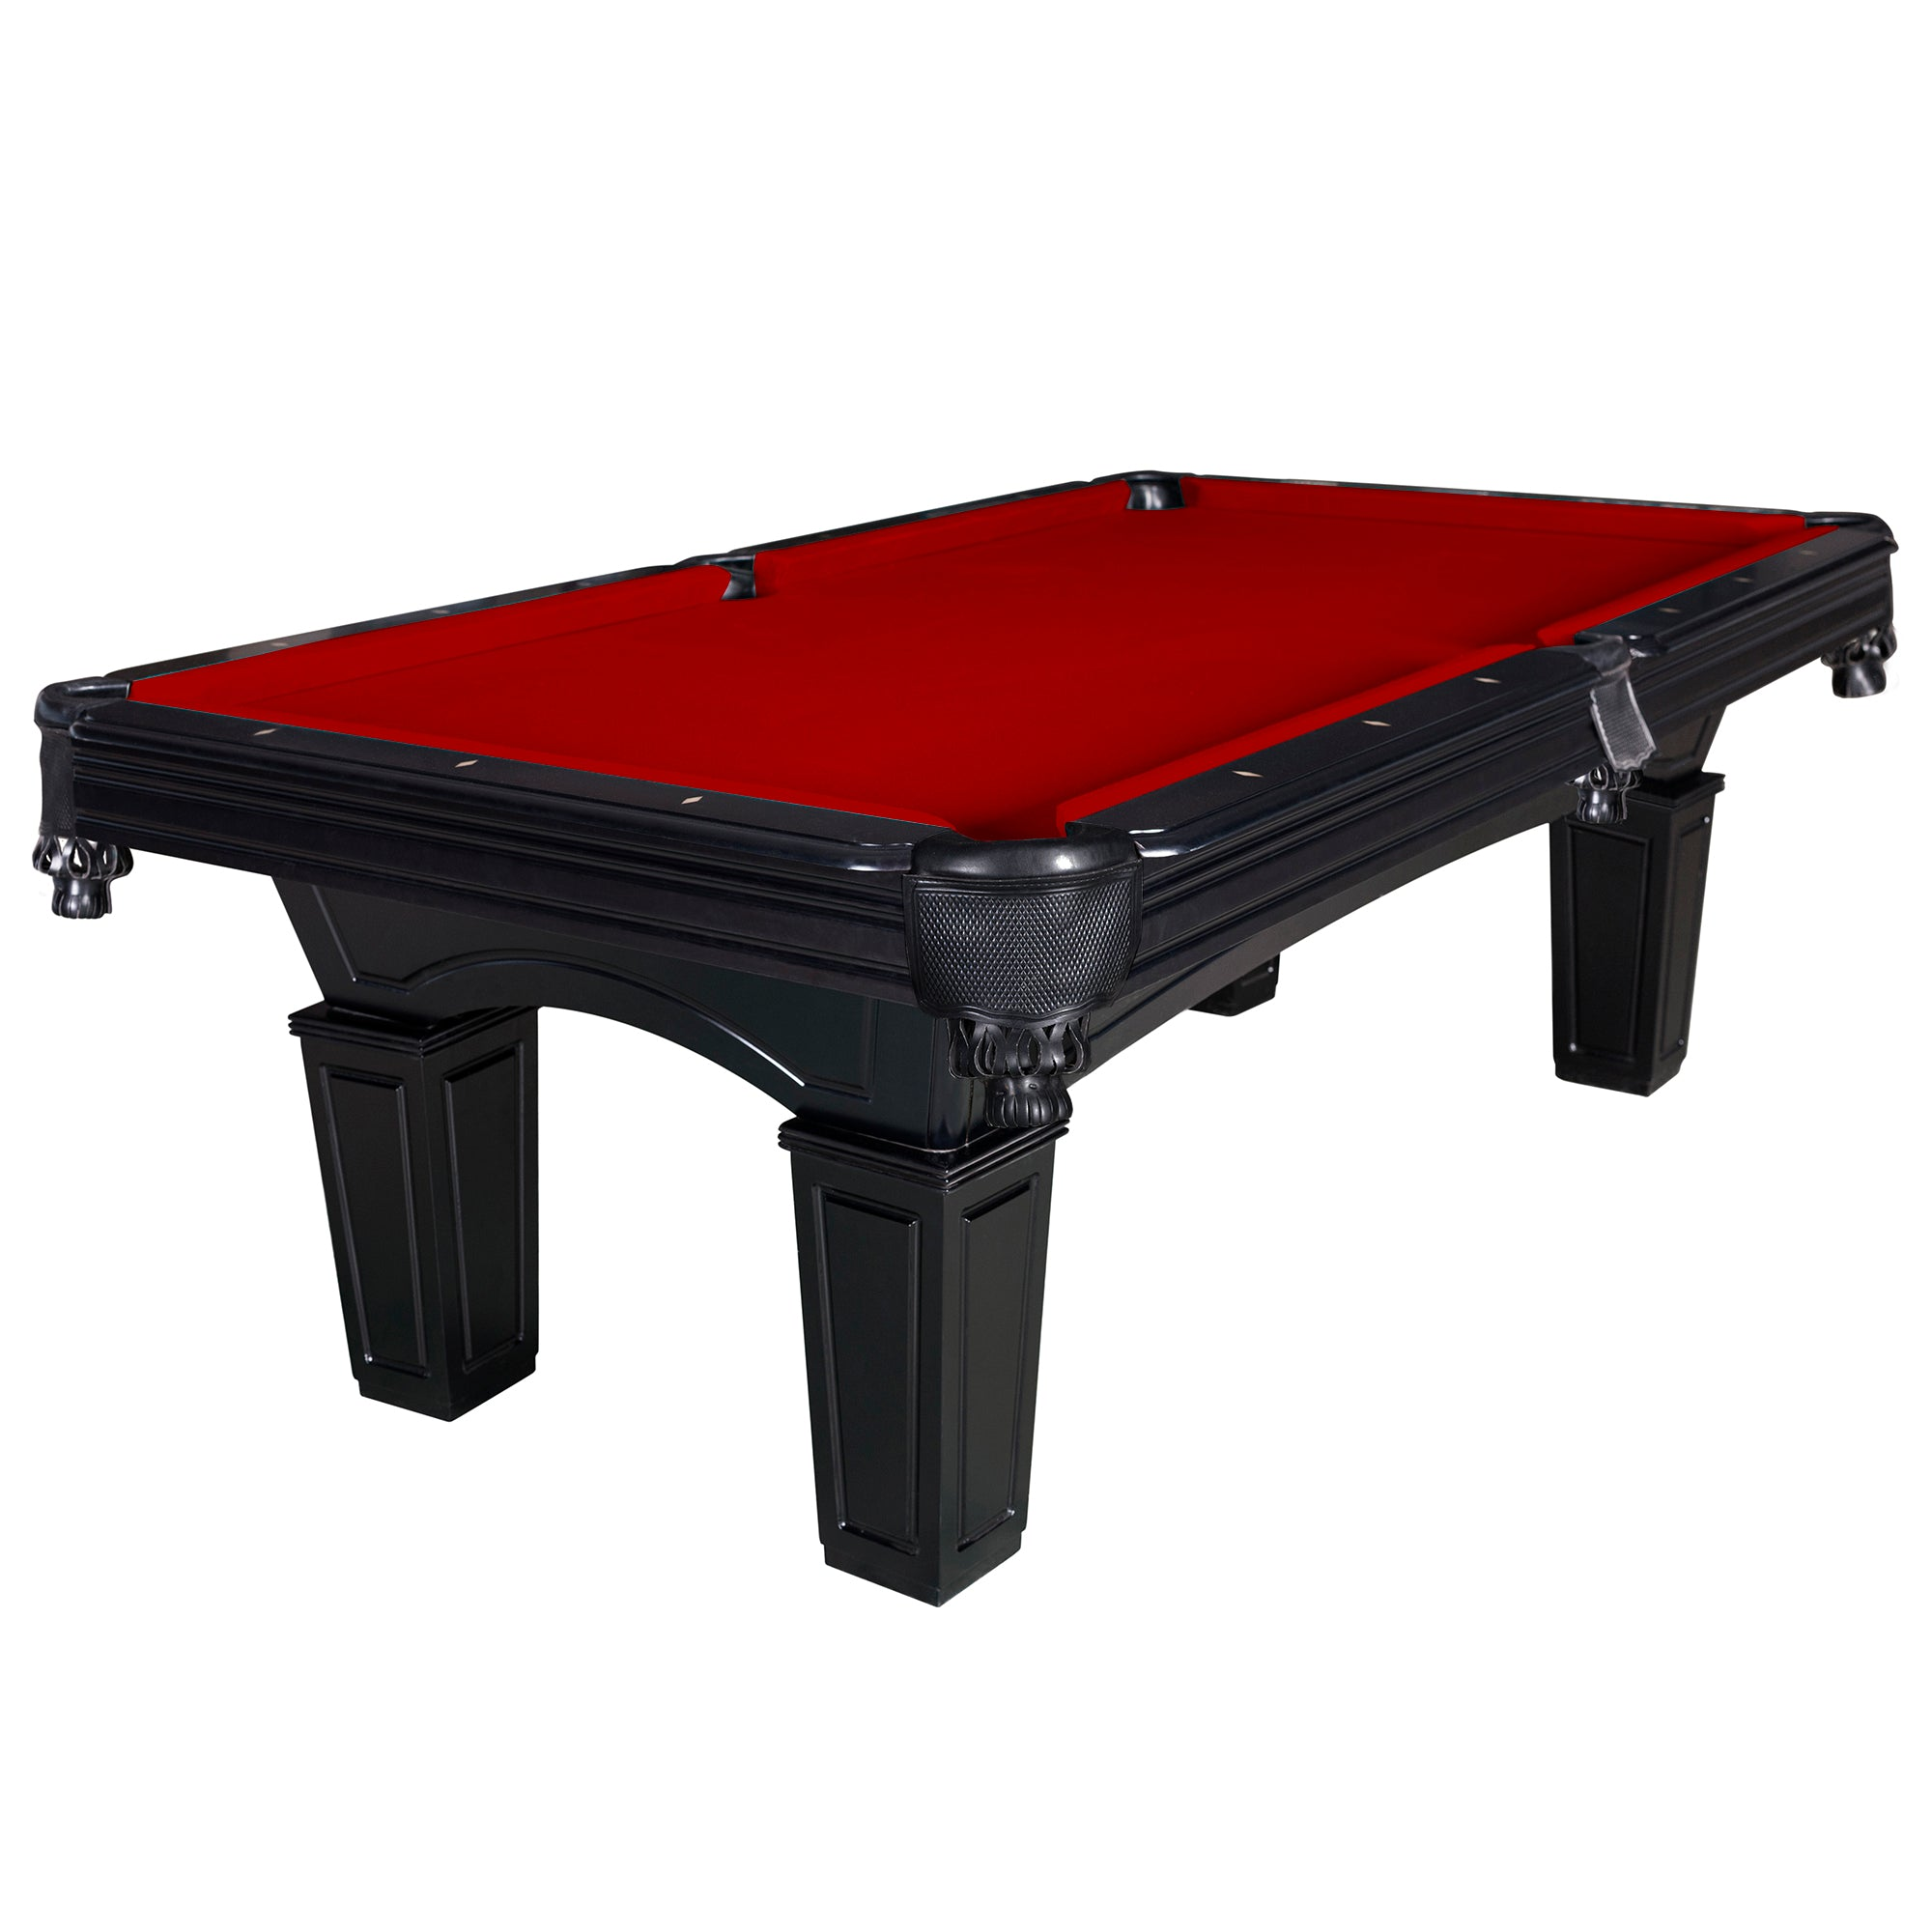 Hathaway Cobra Black 8ft Slate Pool Table - Gaming Blaze